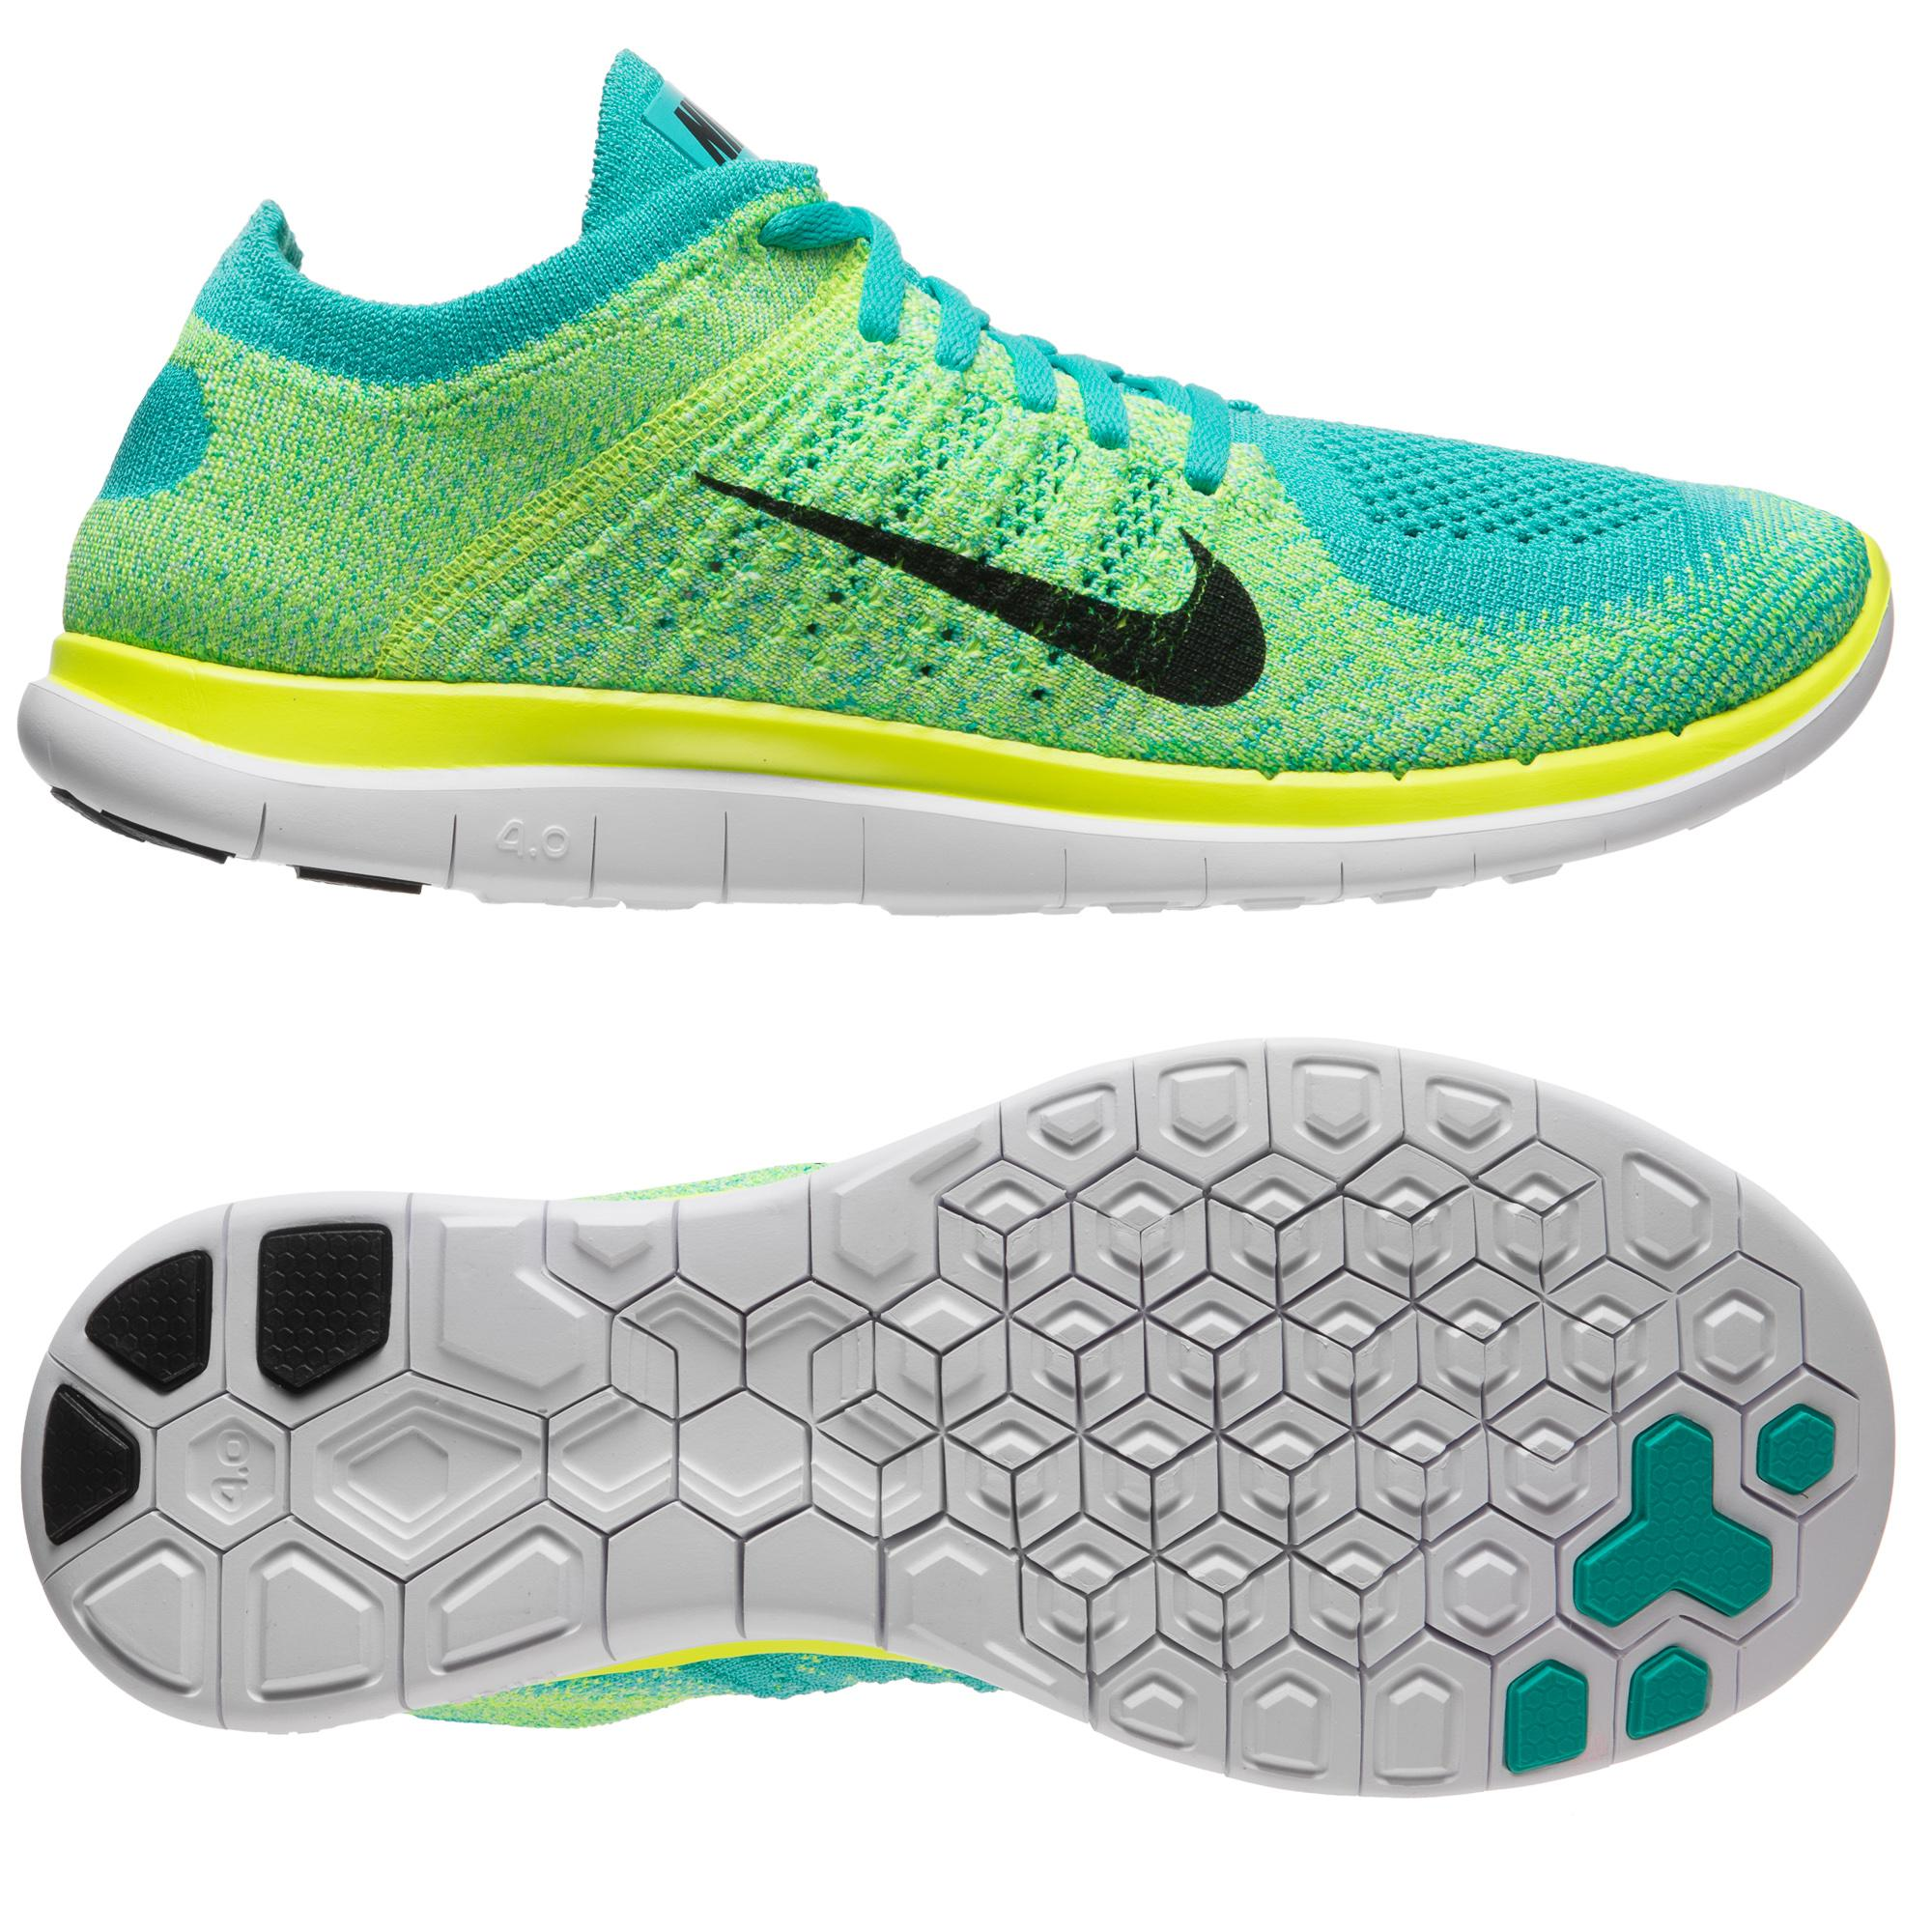 Football365 Nike Free Running Shoe Flyknit 40 Hyper Jadeelectric Greenblack Women 121235 Factory